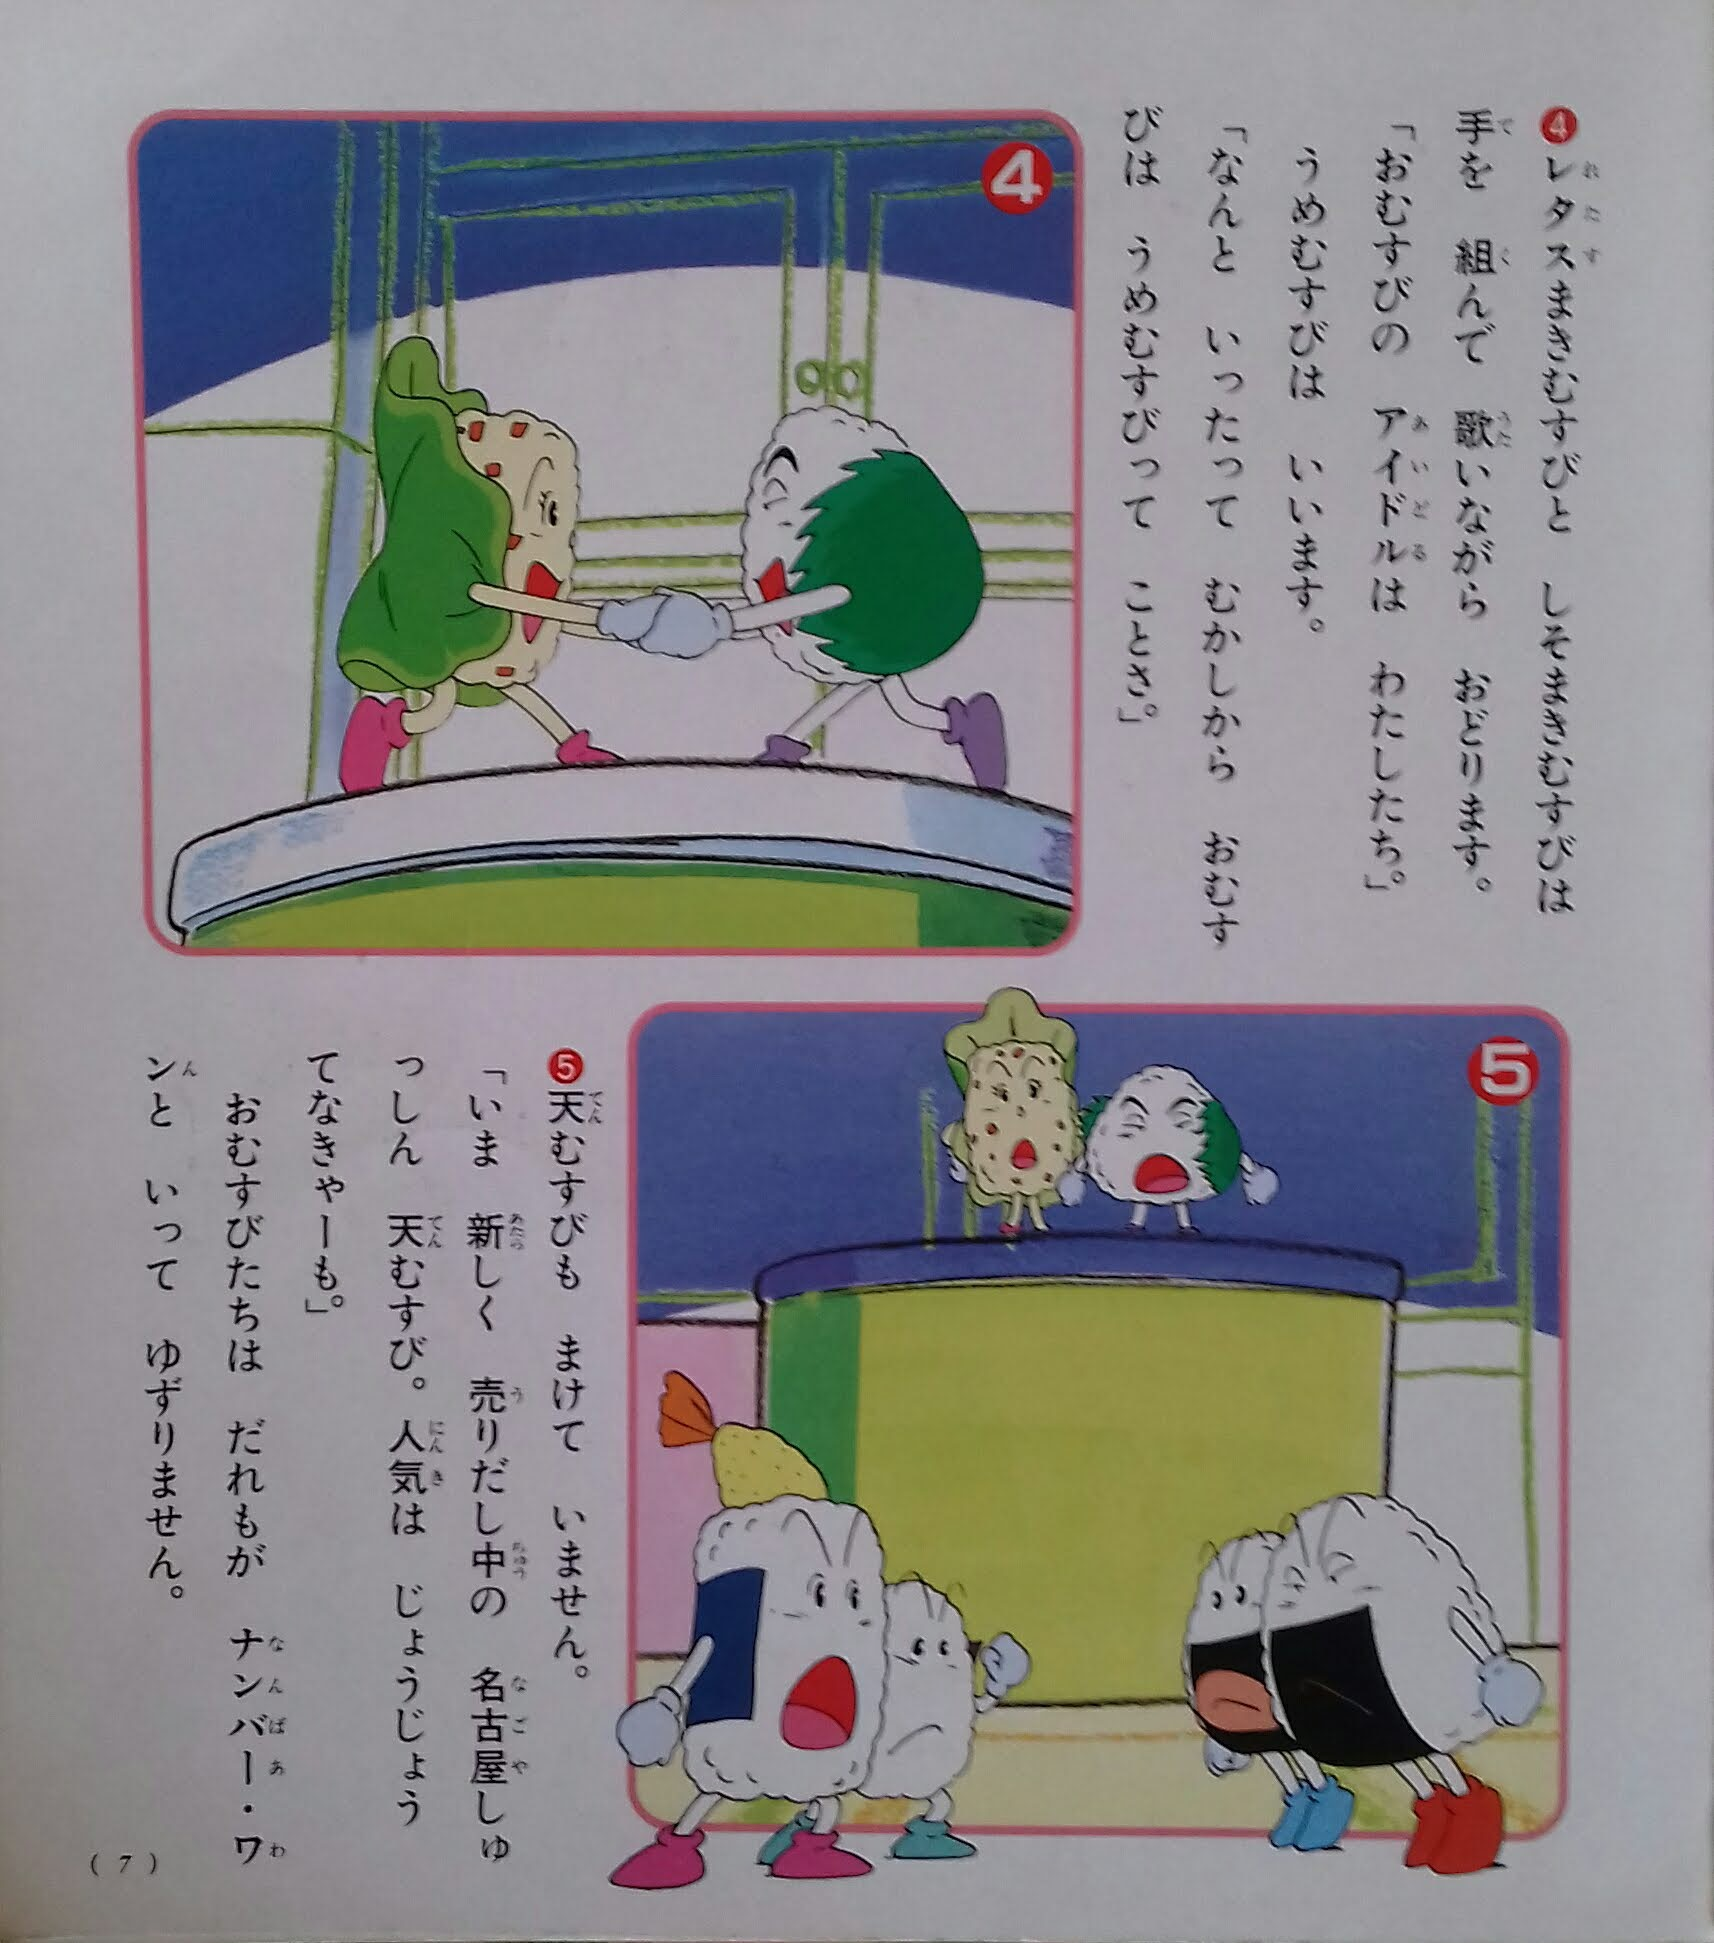 Two rice balls are dancing hand to hand.  Two other rice balls are standing on the top of something and four others are arguing.